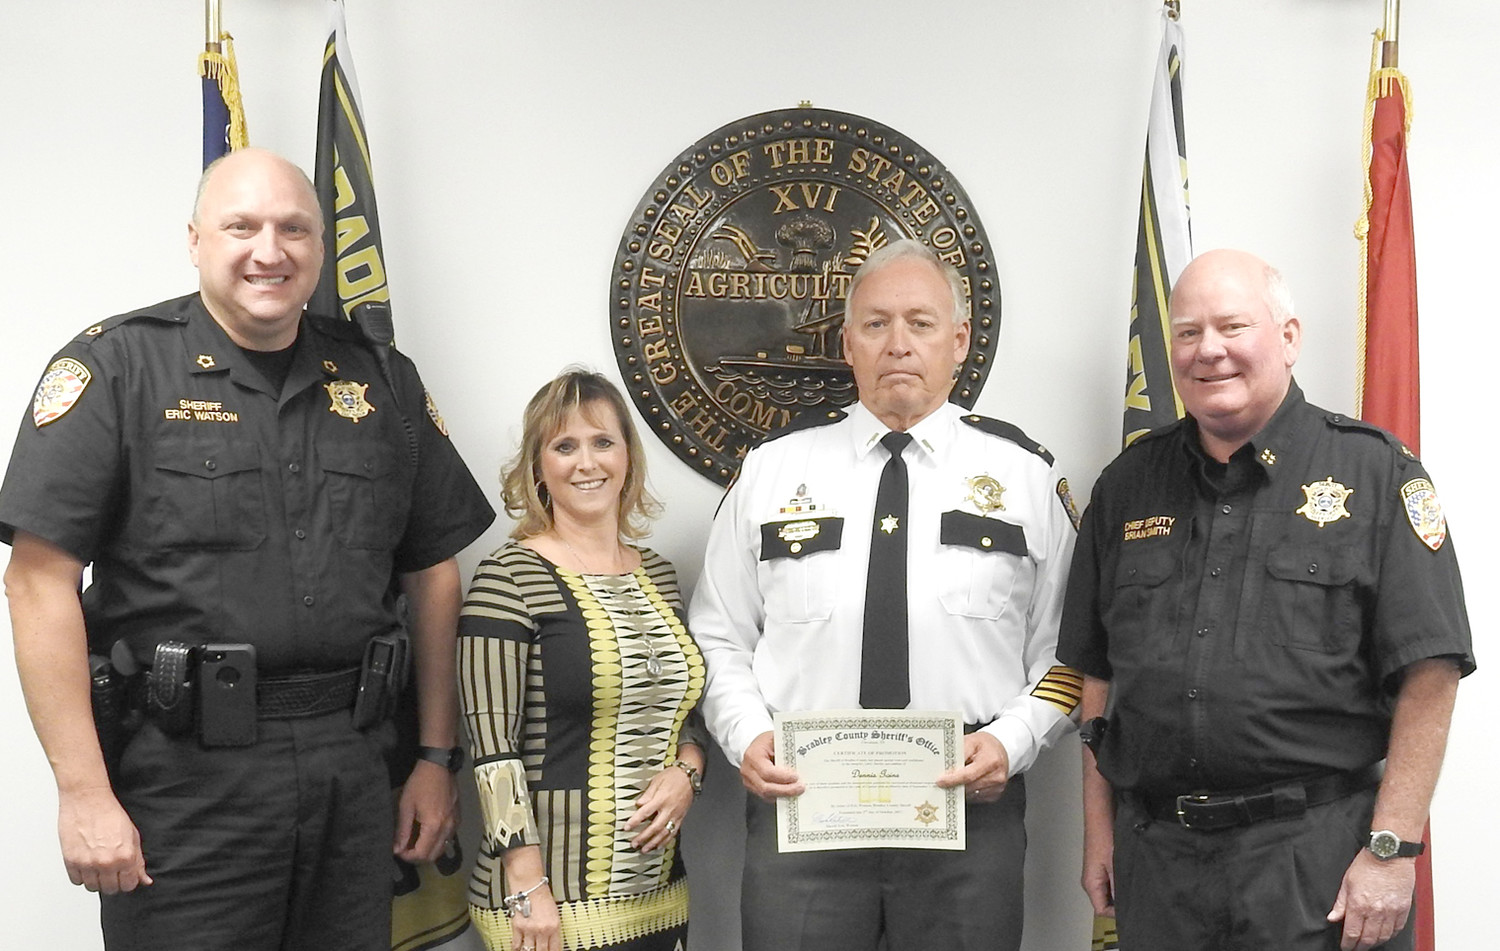 DENNIS GOINS was recently named as captain of the Bradley County Sheriff's Office Patrol Division. From left are Sheriff Eric Watson, Deanna Goins, Goins, and Deputy Chief Brian Smith.